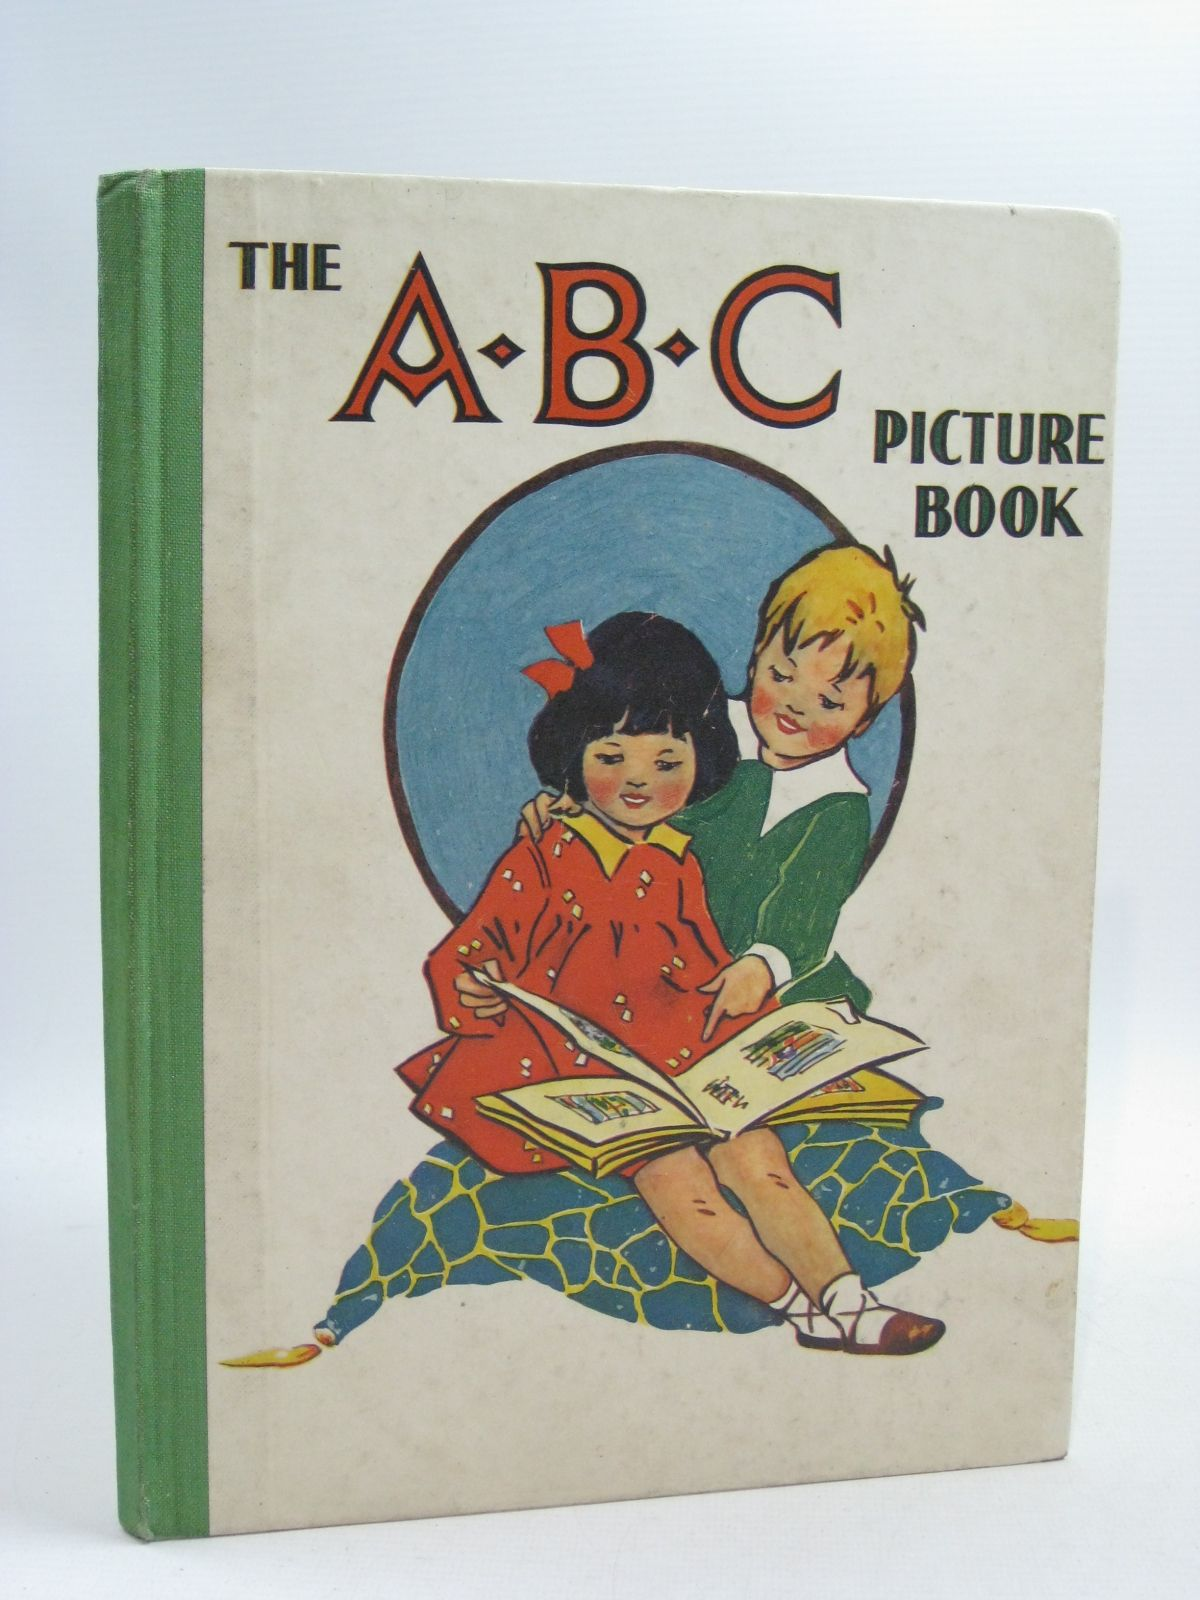 Photo of THE ABC PICTURE BOOK written by Lambert, H.G.C. Marsh illustrated by Lambert, H.G.C. Marsh published by Ward Lock & Co Ltd. (STOCK CODE: 1505184)  for sale by Stella & Rose's Books